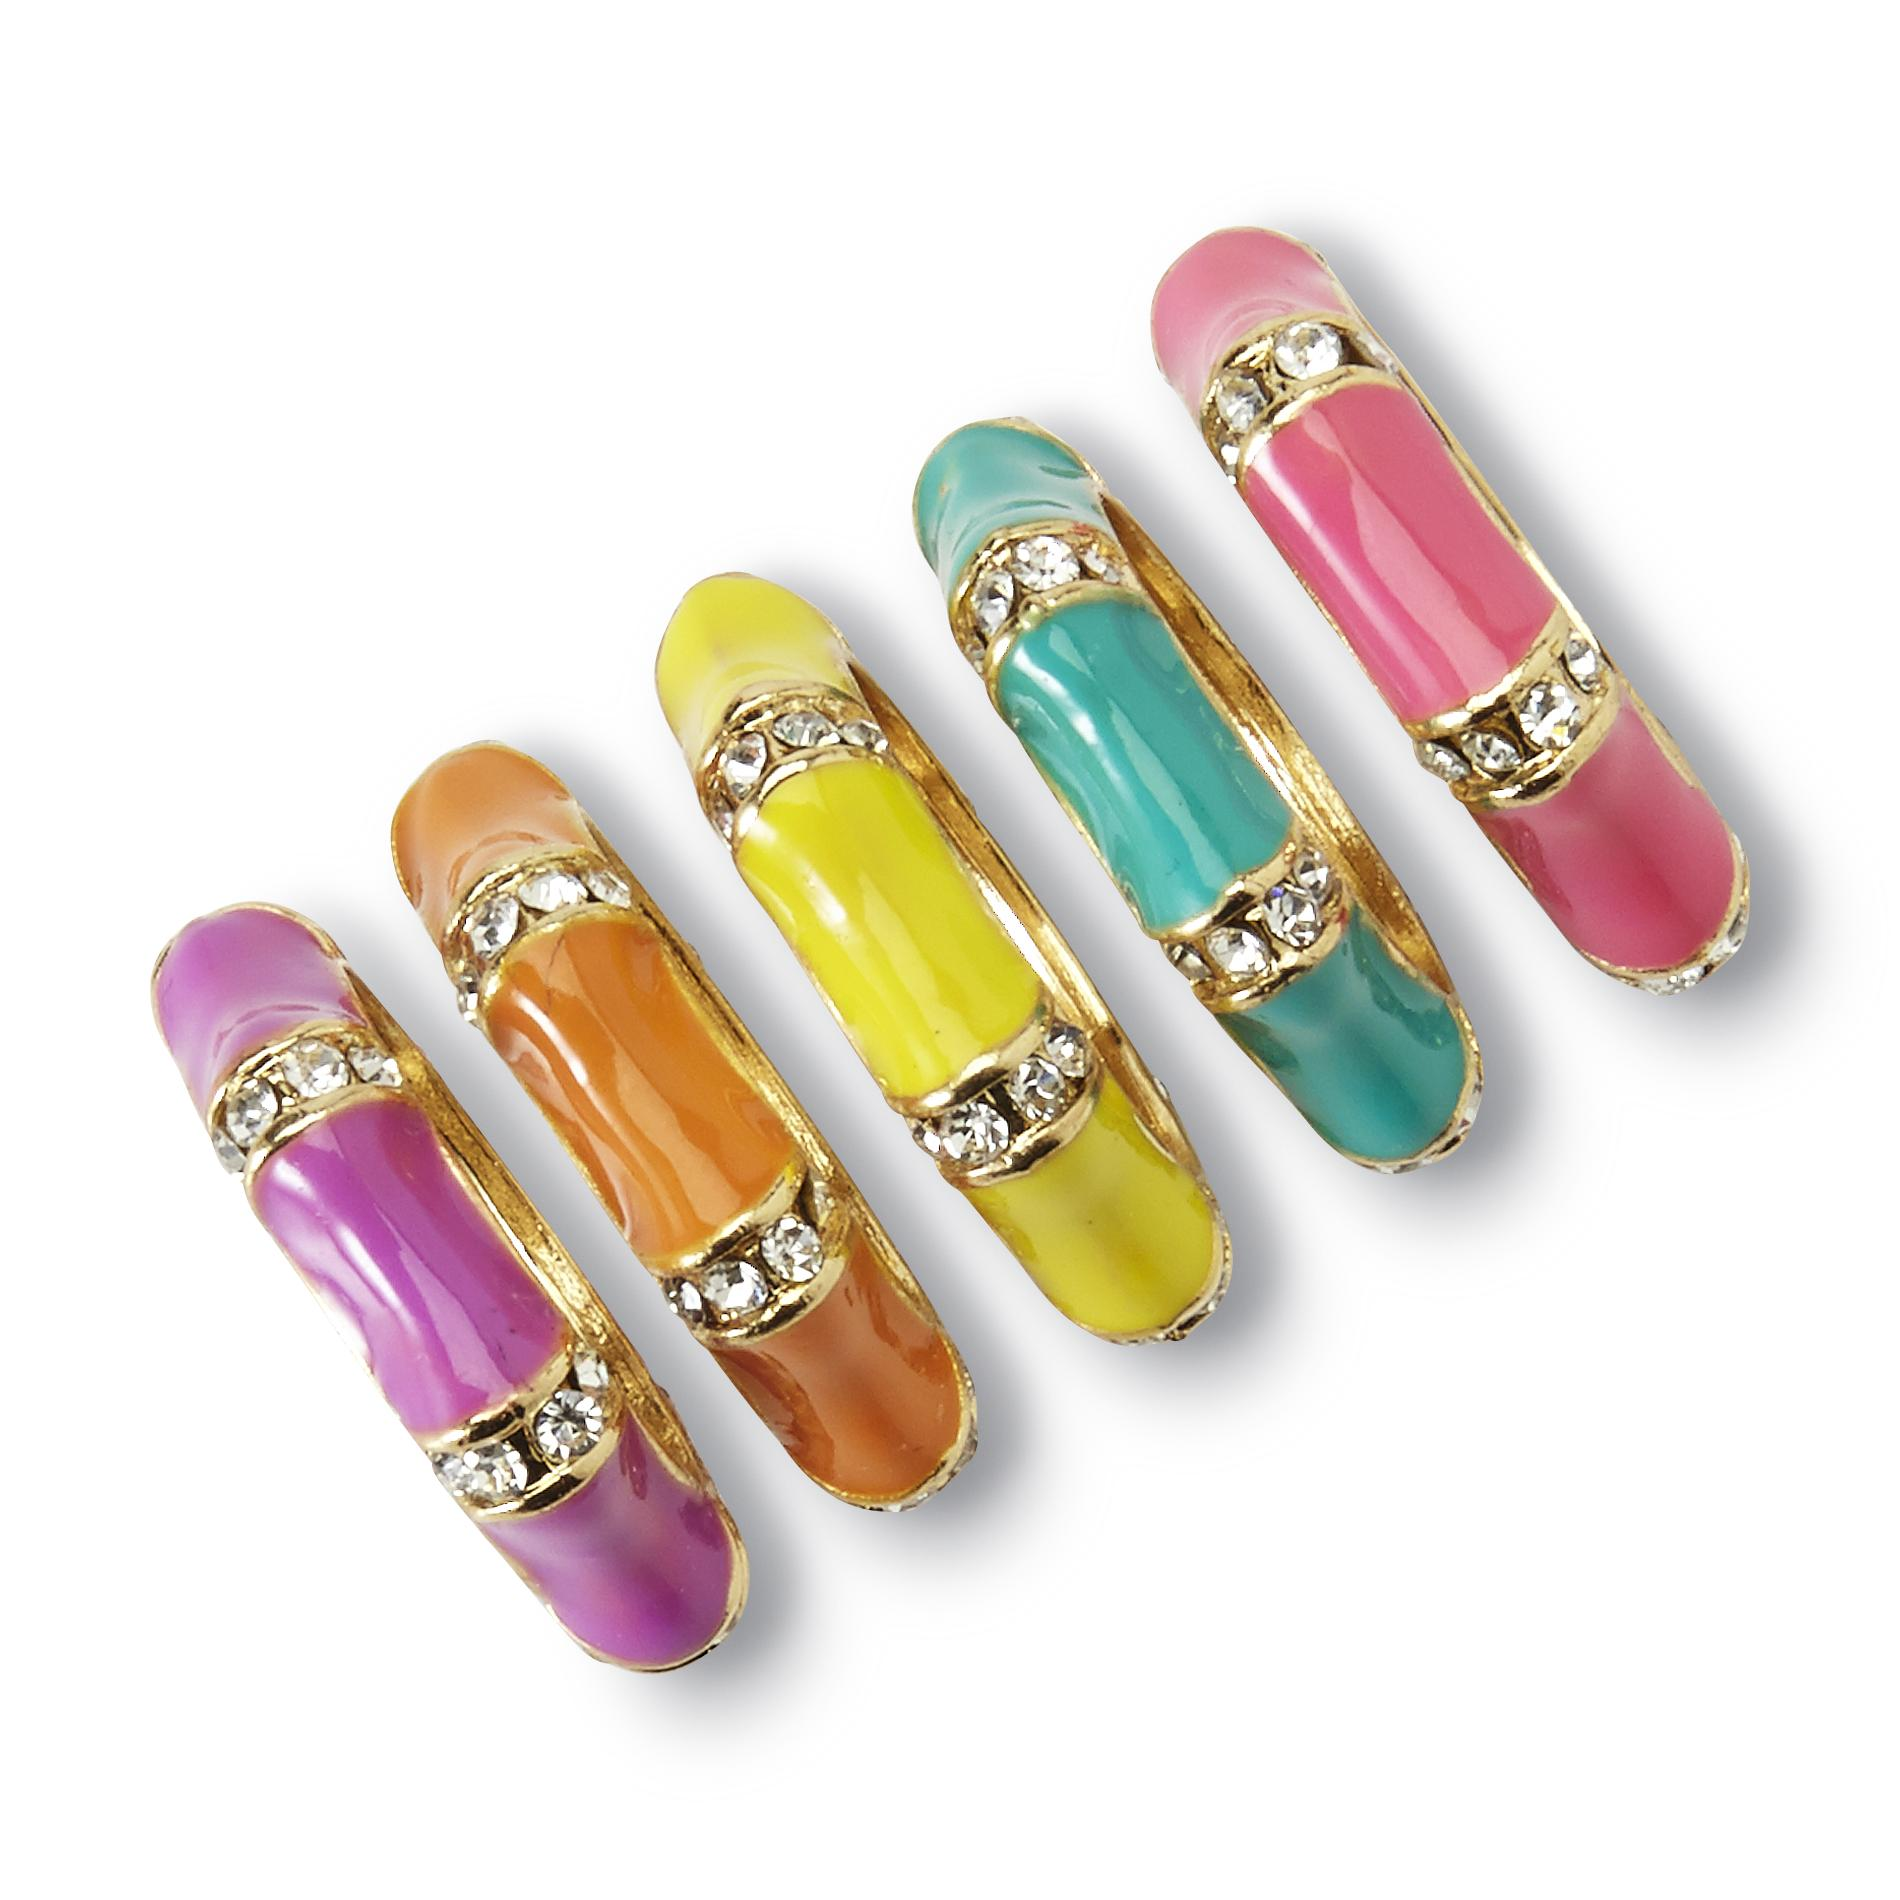 Joe Boxer Women's 5-Pack Goldtone Colorful Rings